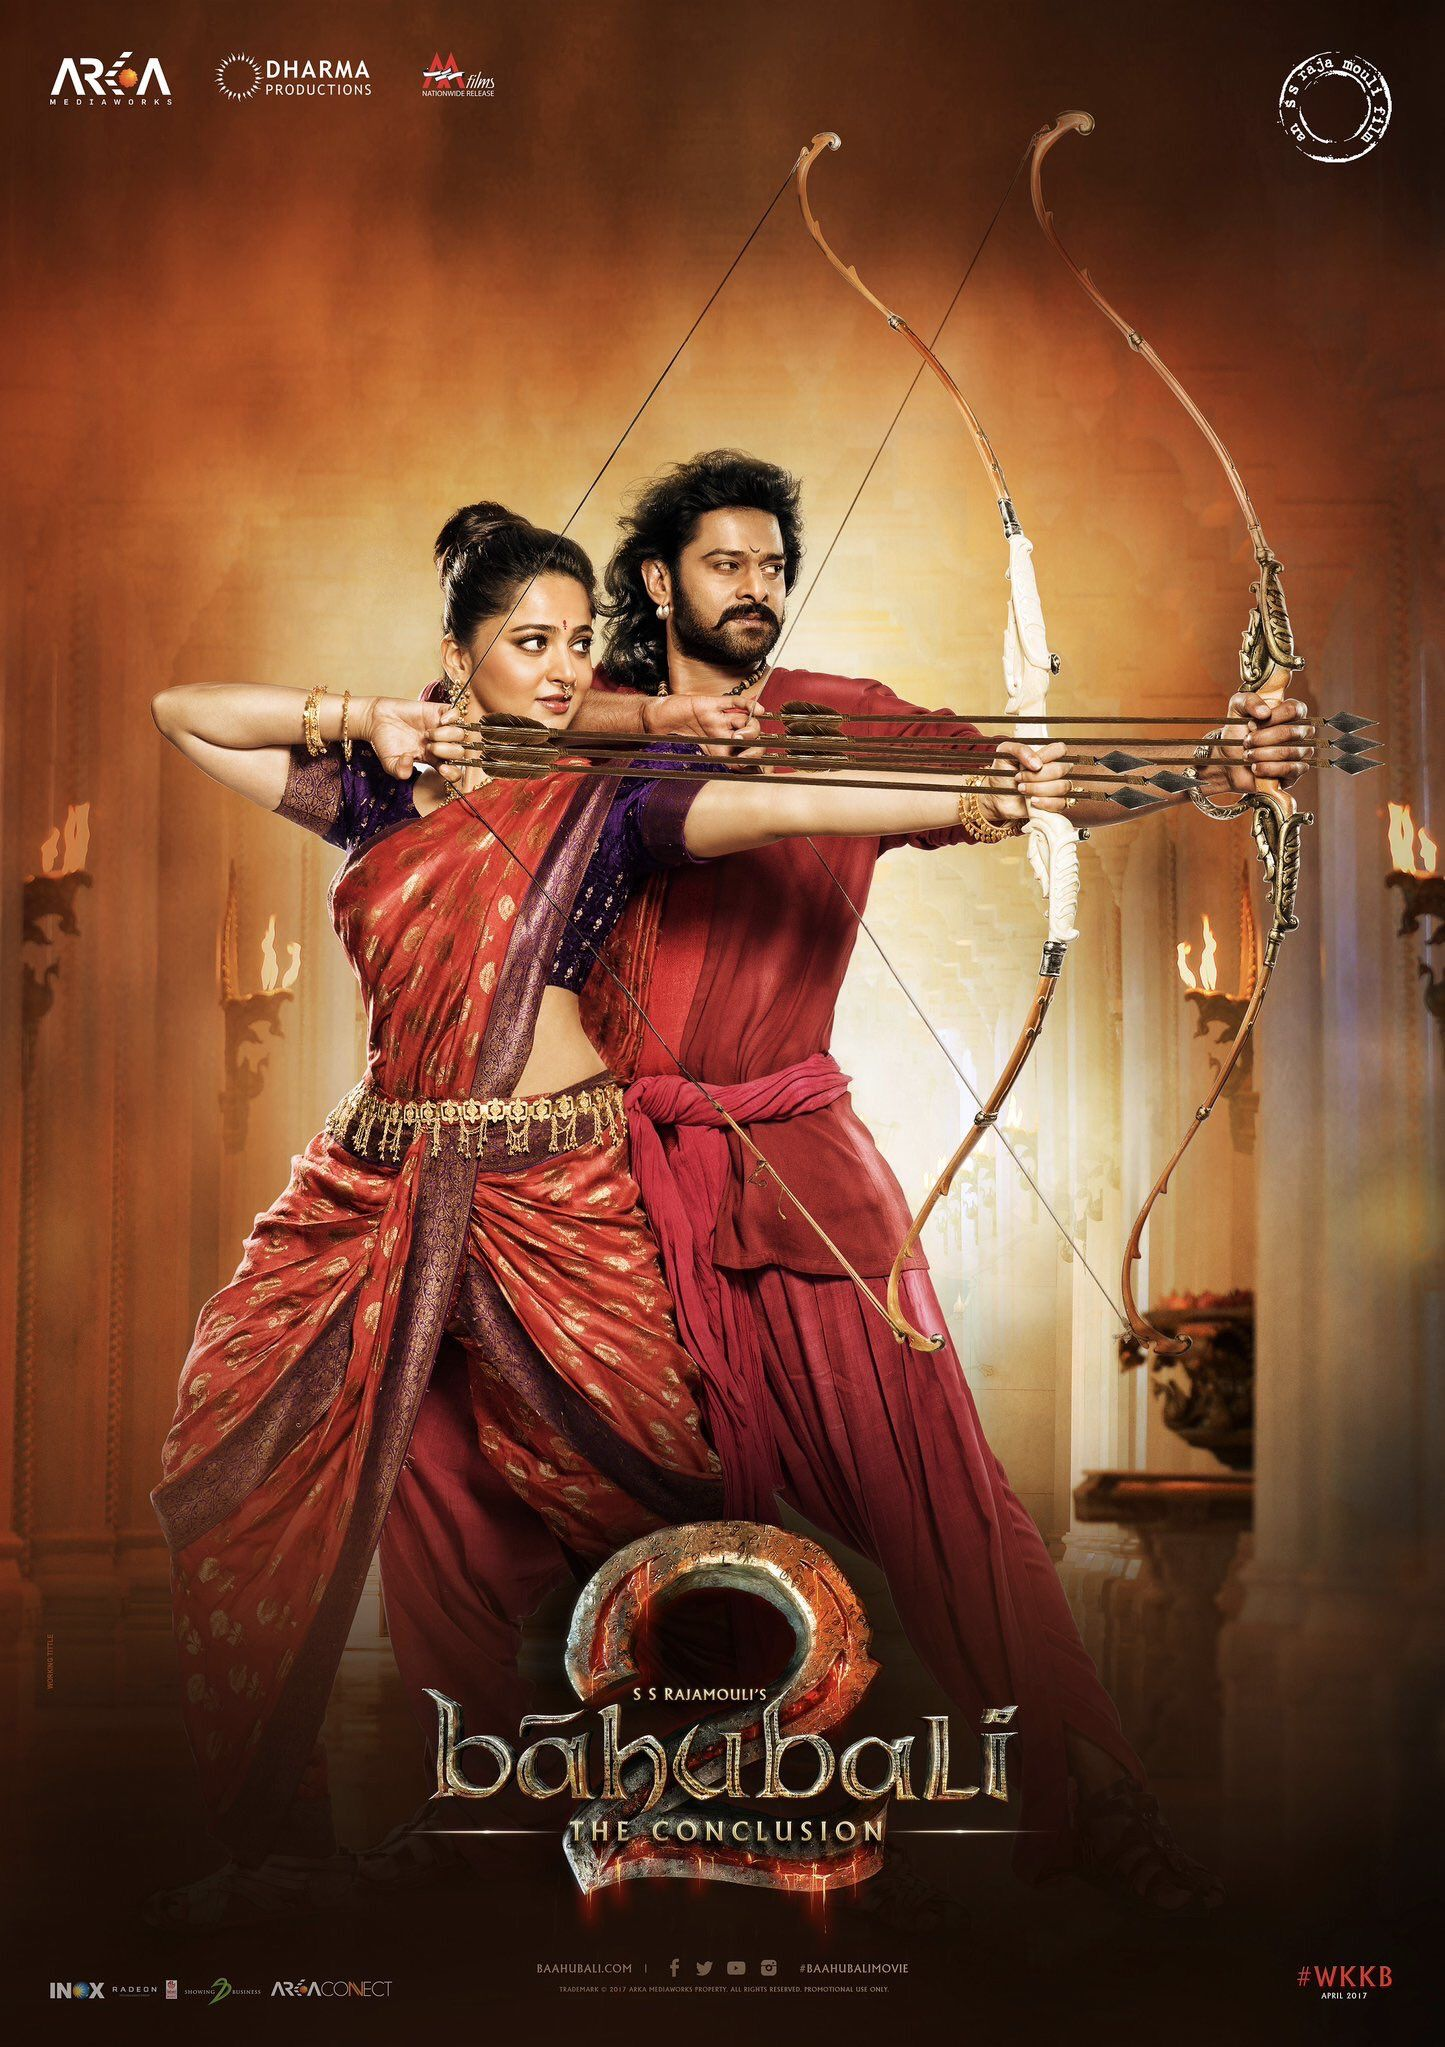 check out the new movie poster of baahubali 2 | india